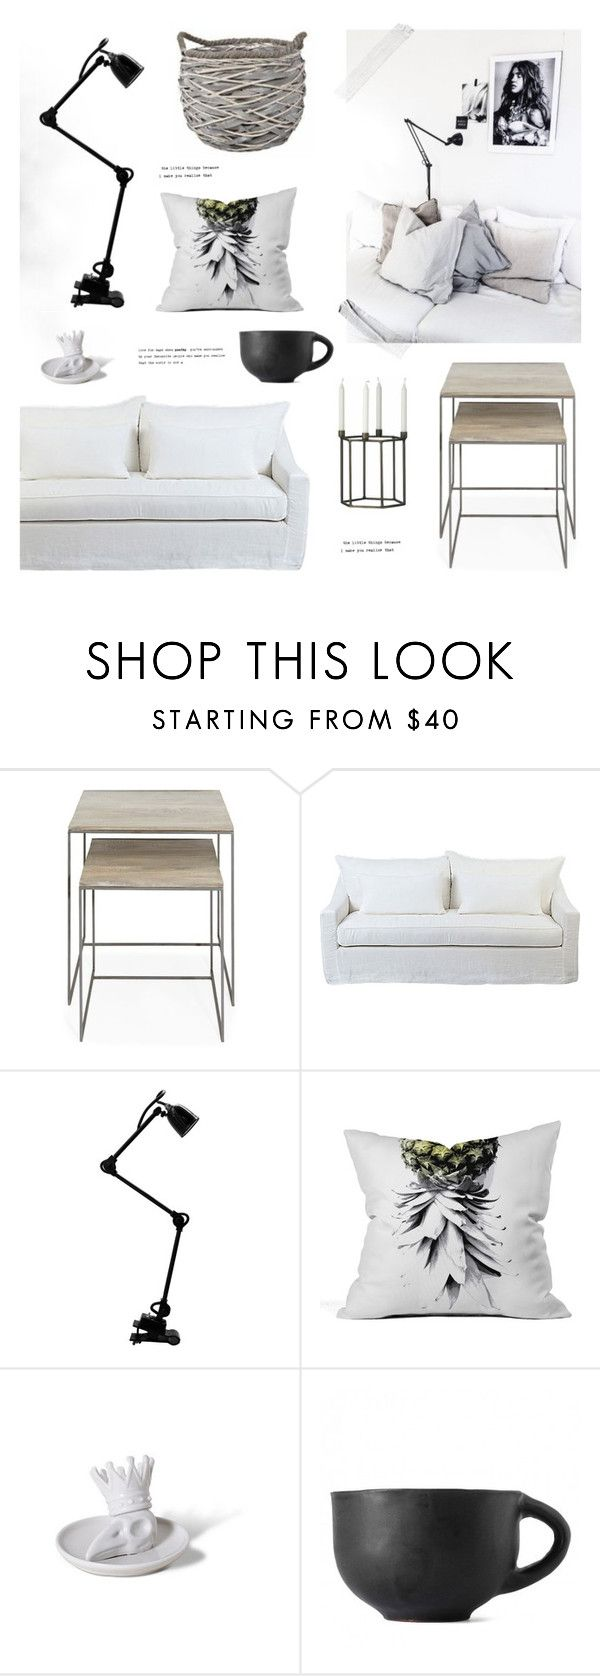 """#1182"" by bellamarie ❤ liked on Polyvore featuring interior, interiors, interior design, home, home decor, interior decorating, French Connection, Moss Studio, Zara Home and Imm Living"